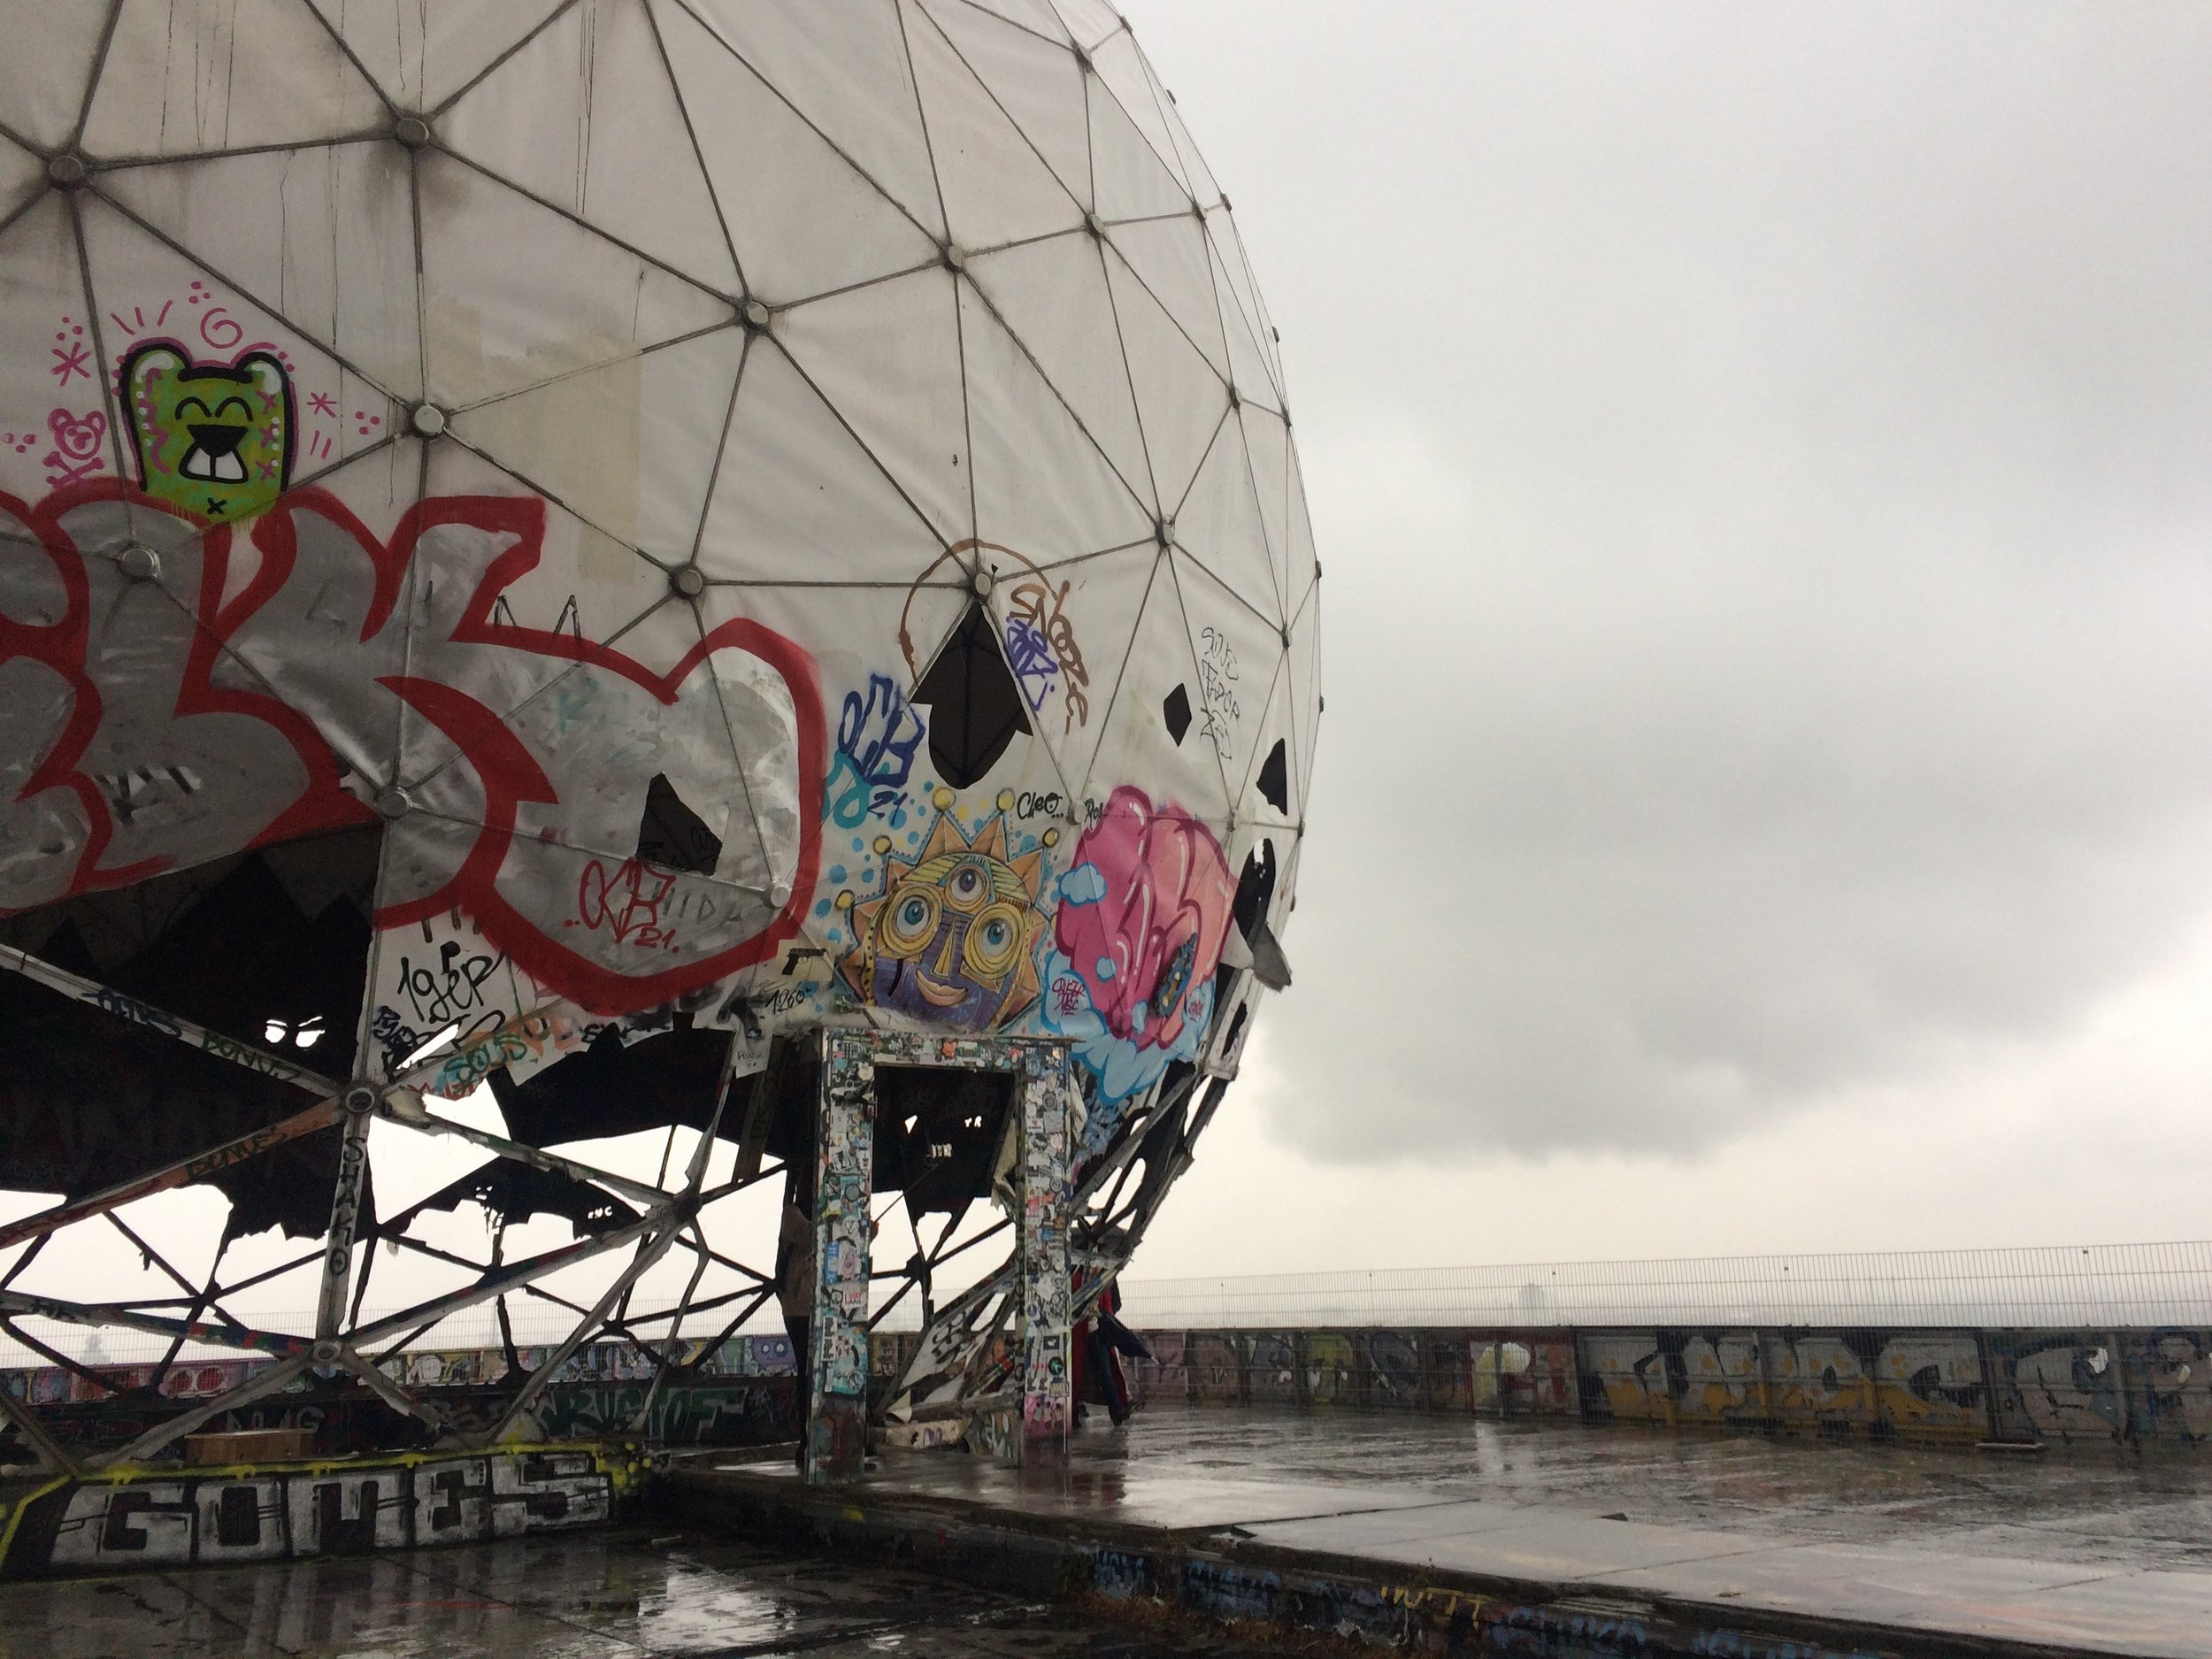 Teufelsberg is for Spies - Abandoned by the U.S., Teufelsberg has become a fascinating excursion for Berliners curious about the city's espionage past. Published in The Daily Beast.